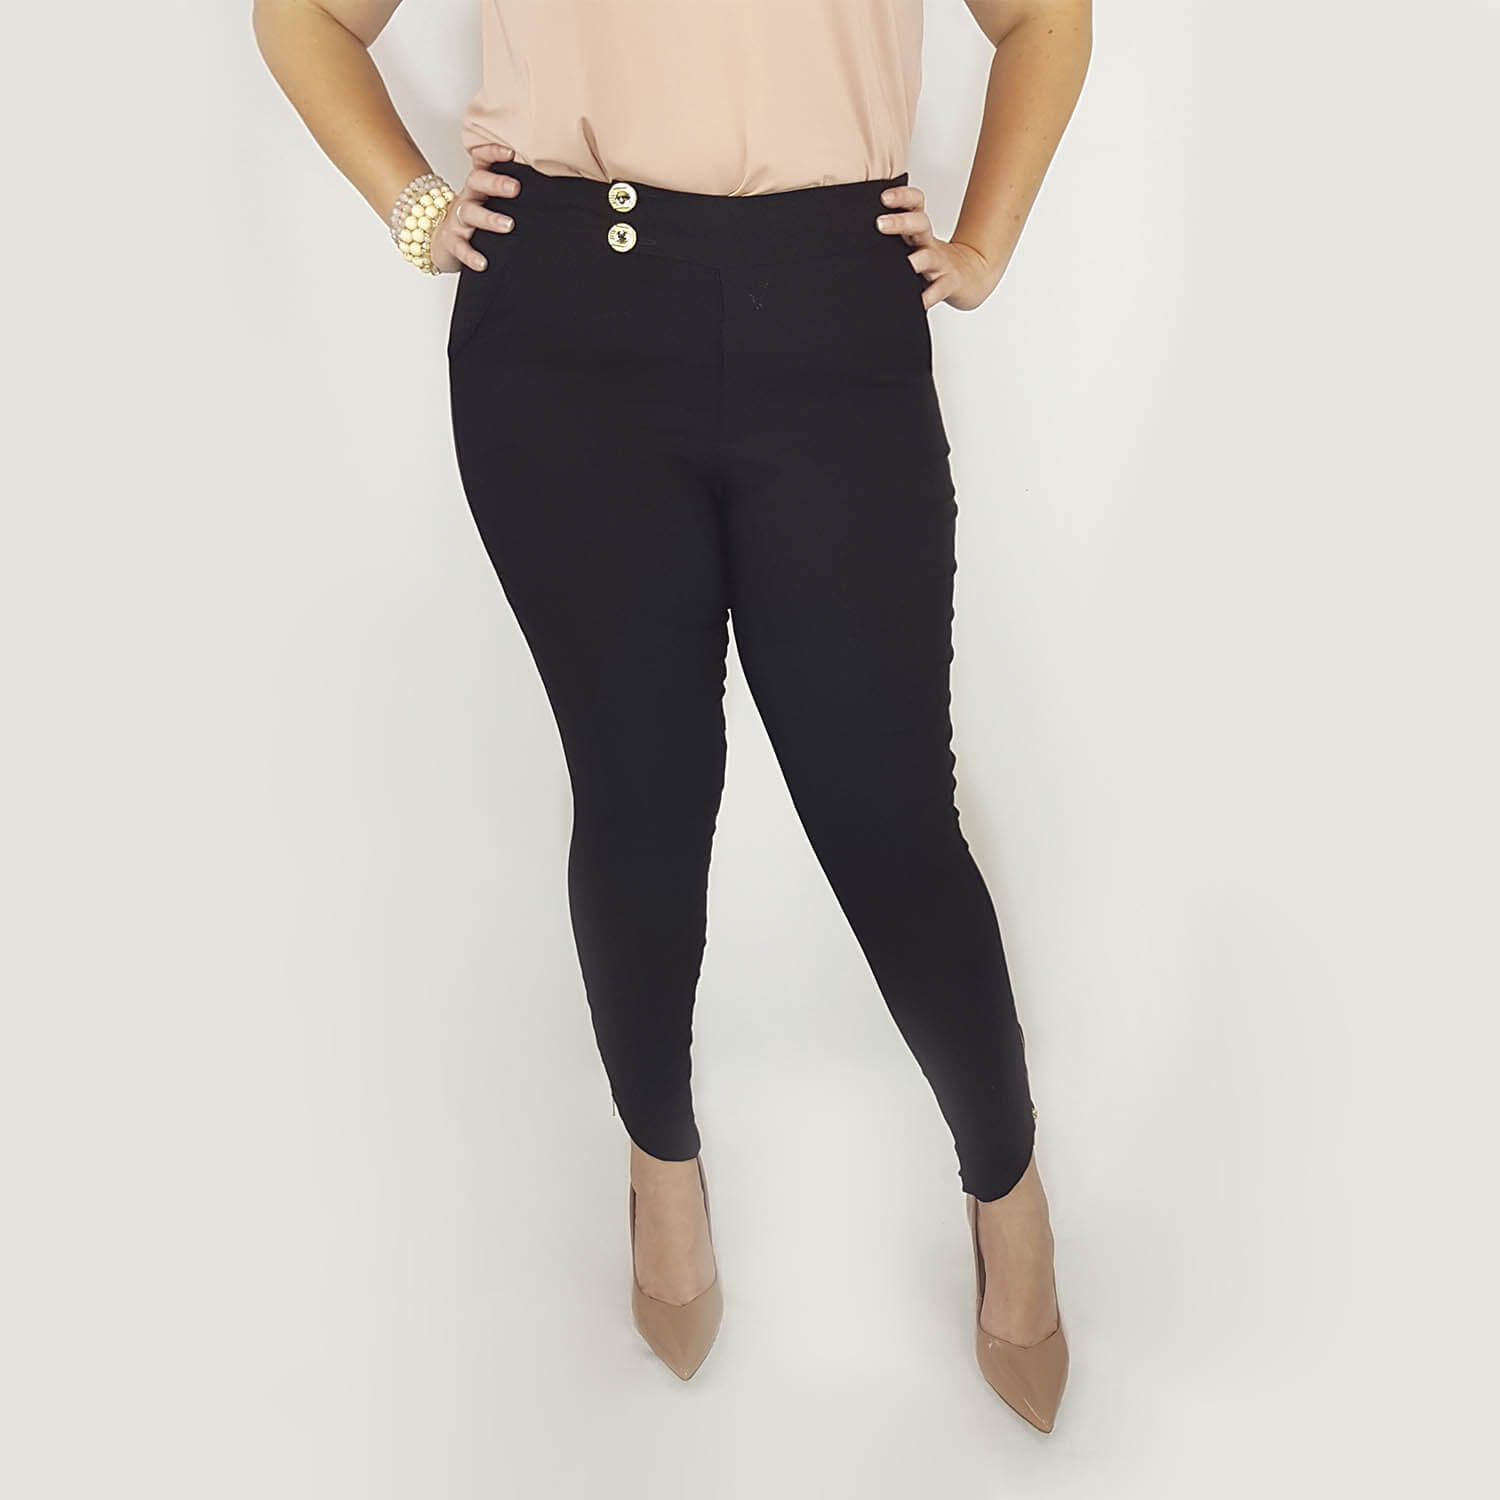 Calça Feminina Plus Size - Annual Plus